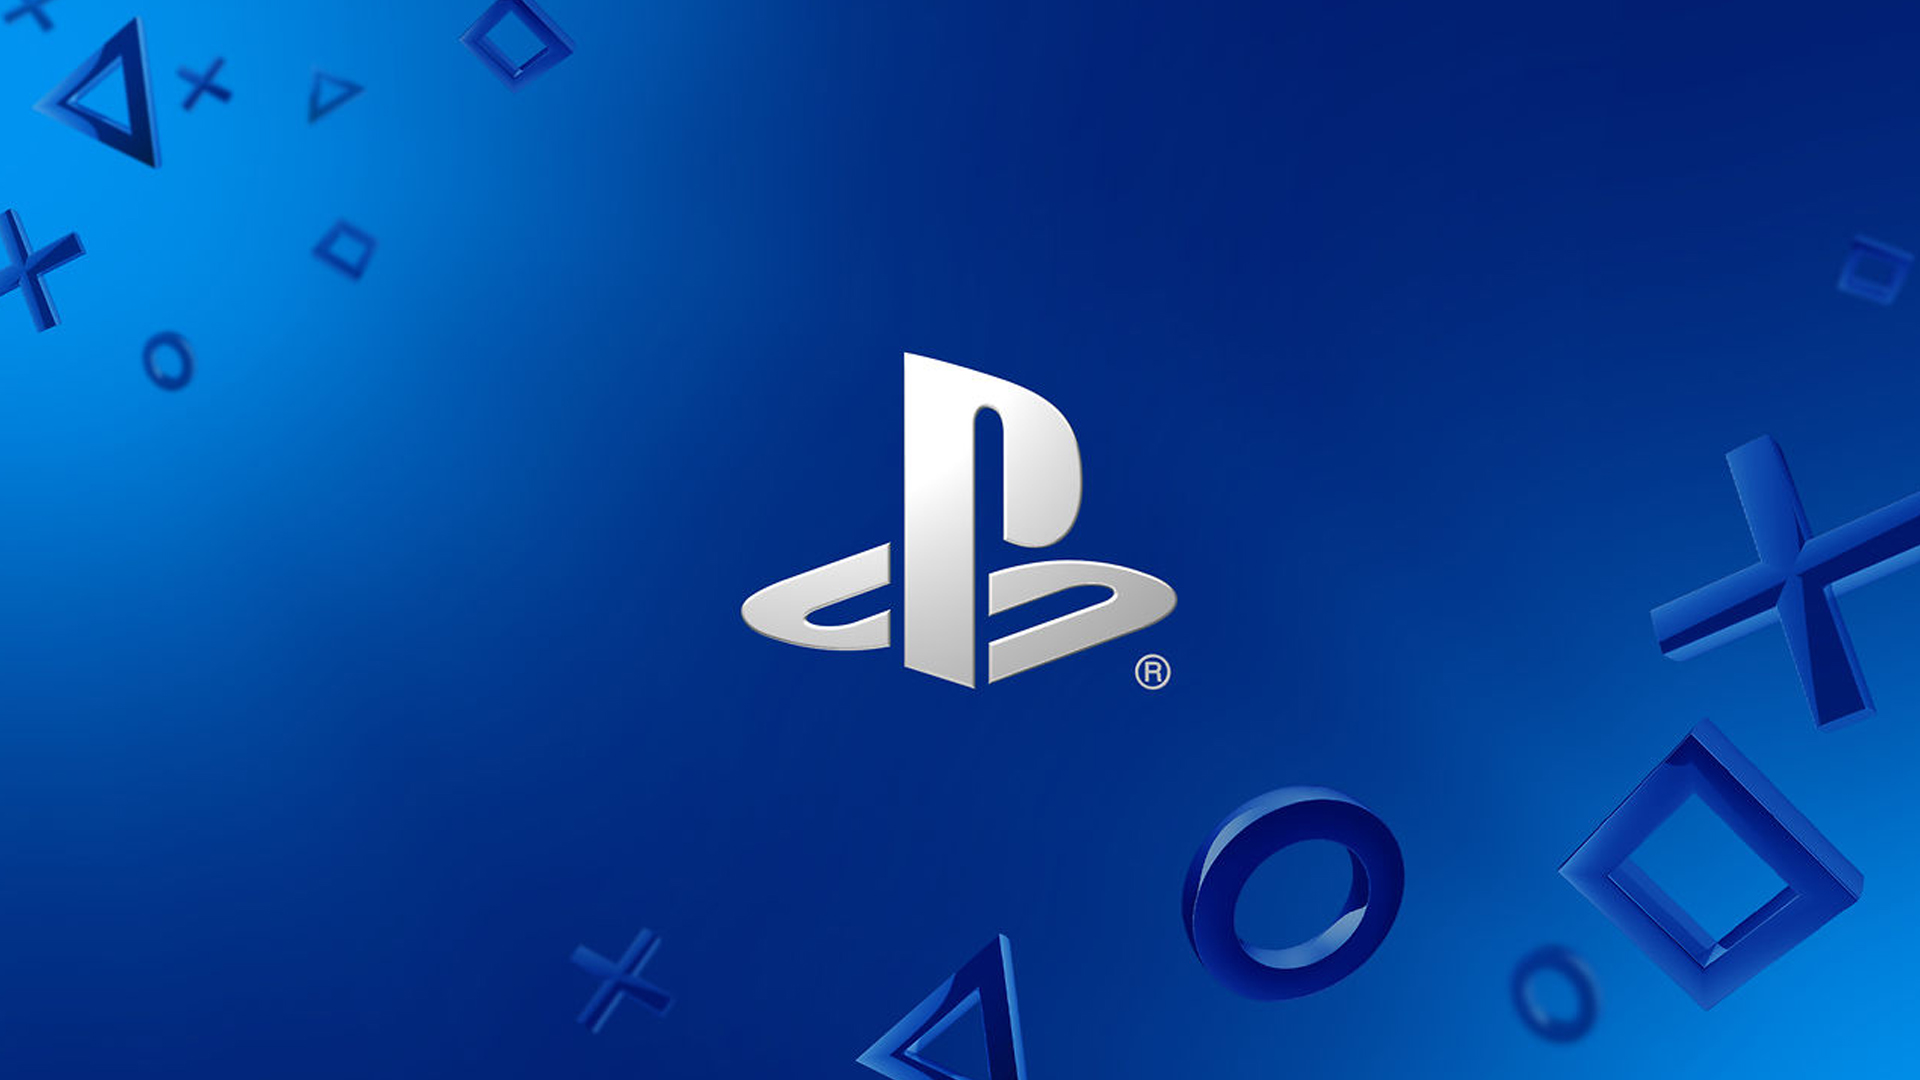 PS5 News, Rumors, Trophies, Reviews, and More - PlayStation LifeStyle